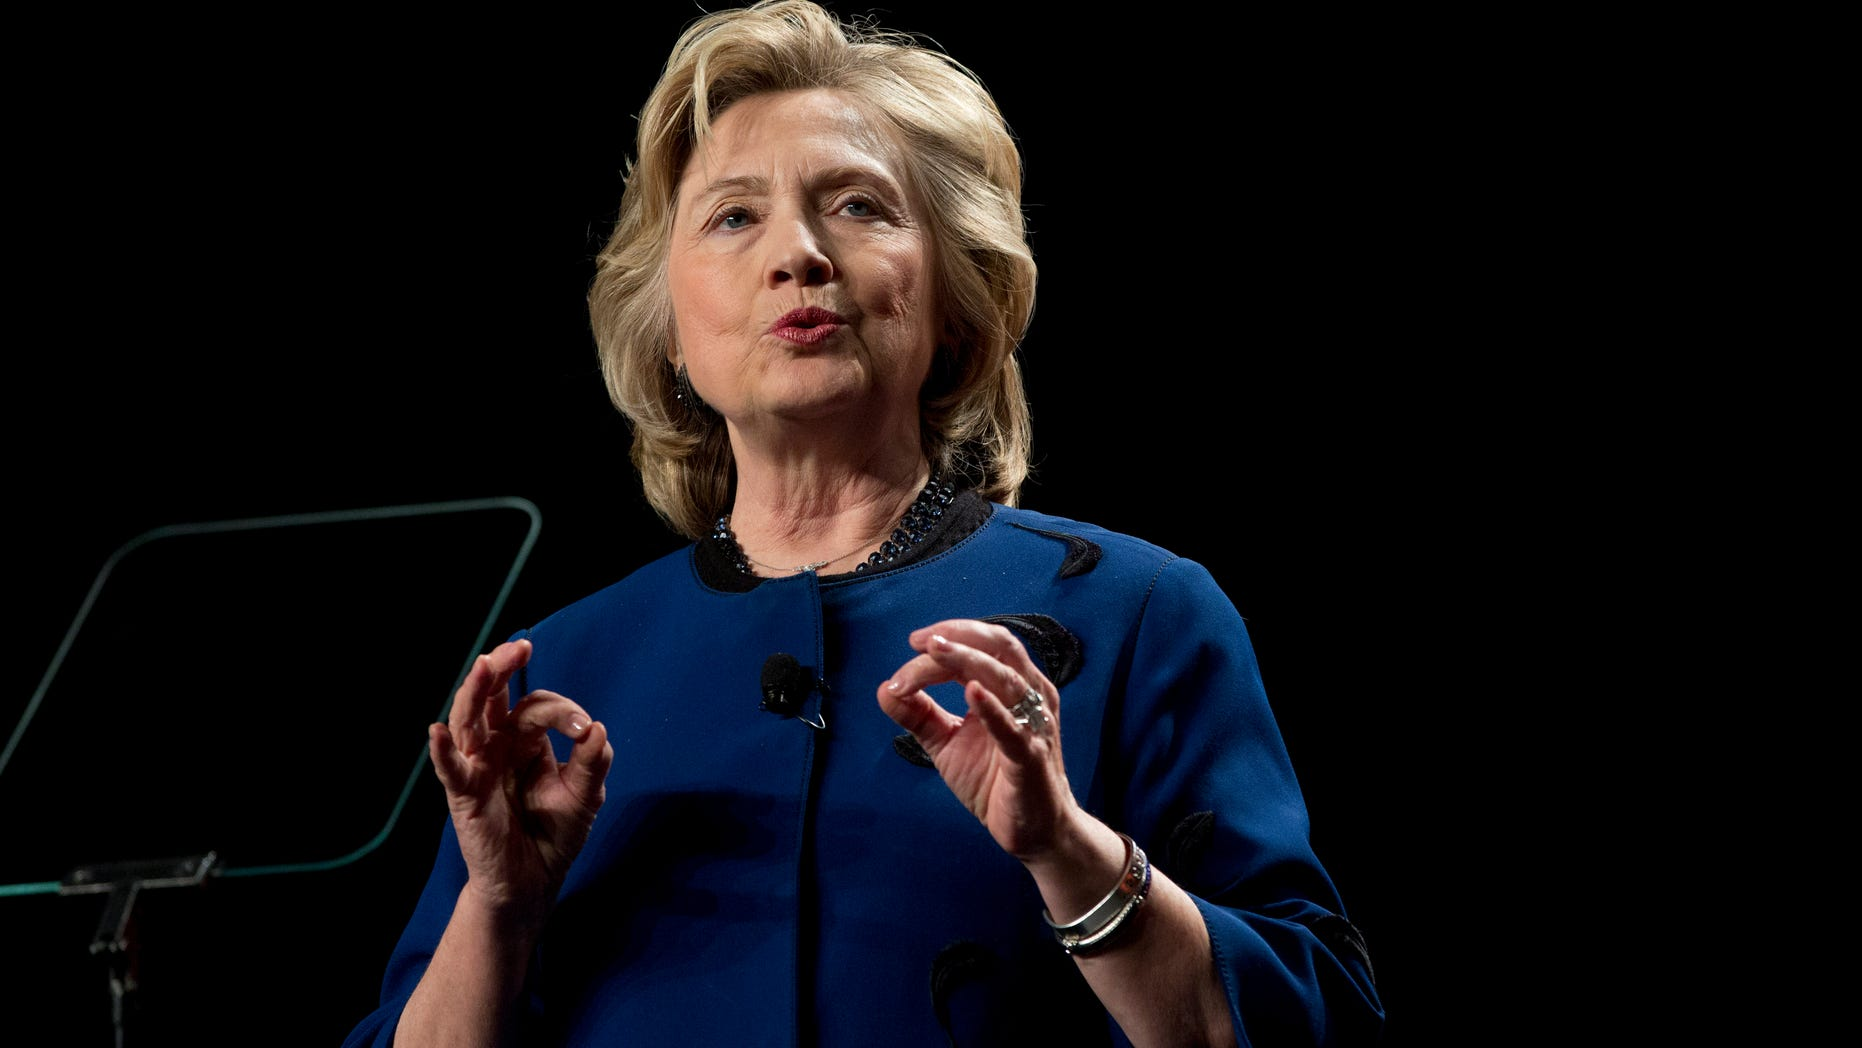 Feb. 26, 2014 Former secretary of state Hillary Clinton speaks at UM in Coral Gables, Fla.